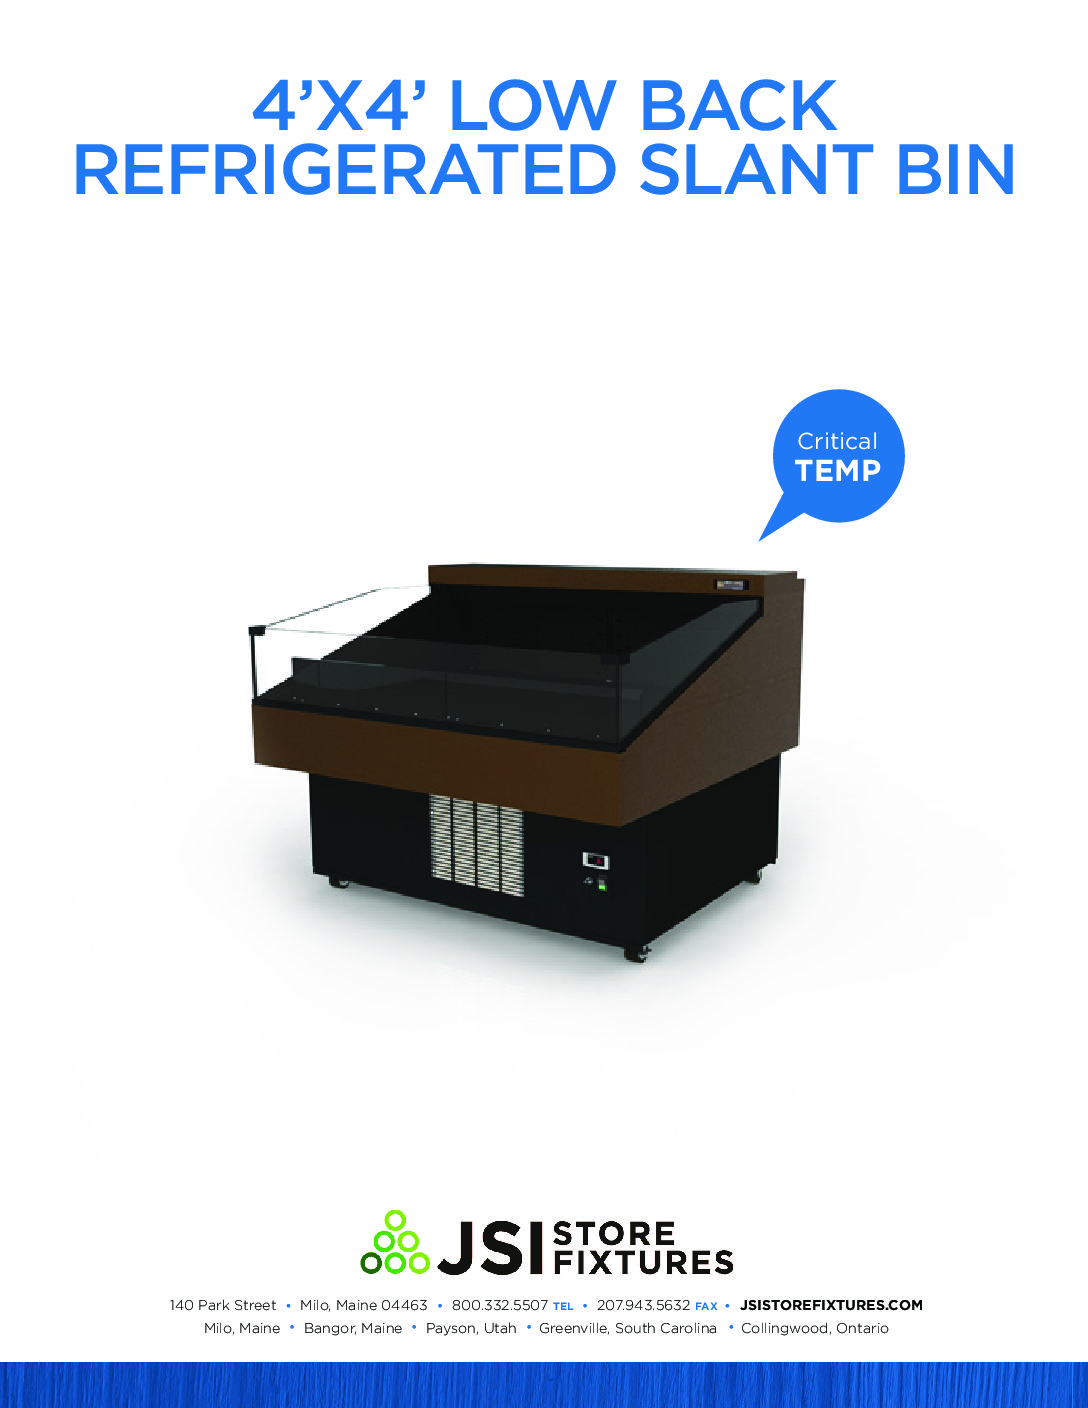 4'x4' Refrigerated Slant Bin Spec Sheet